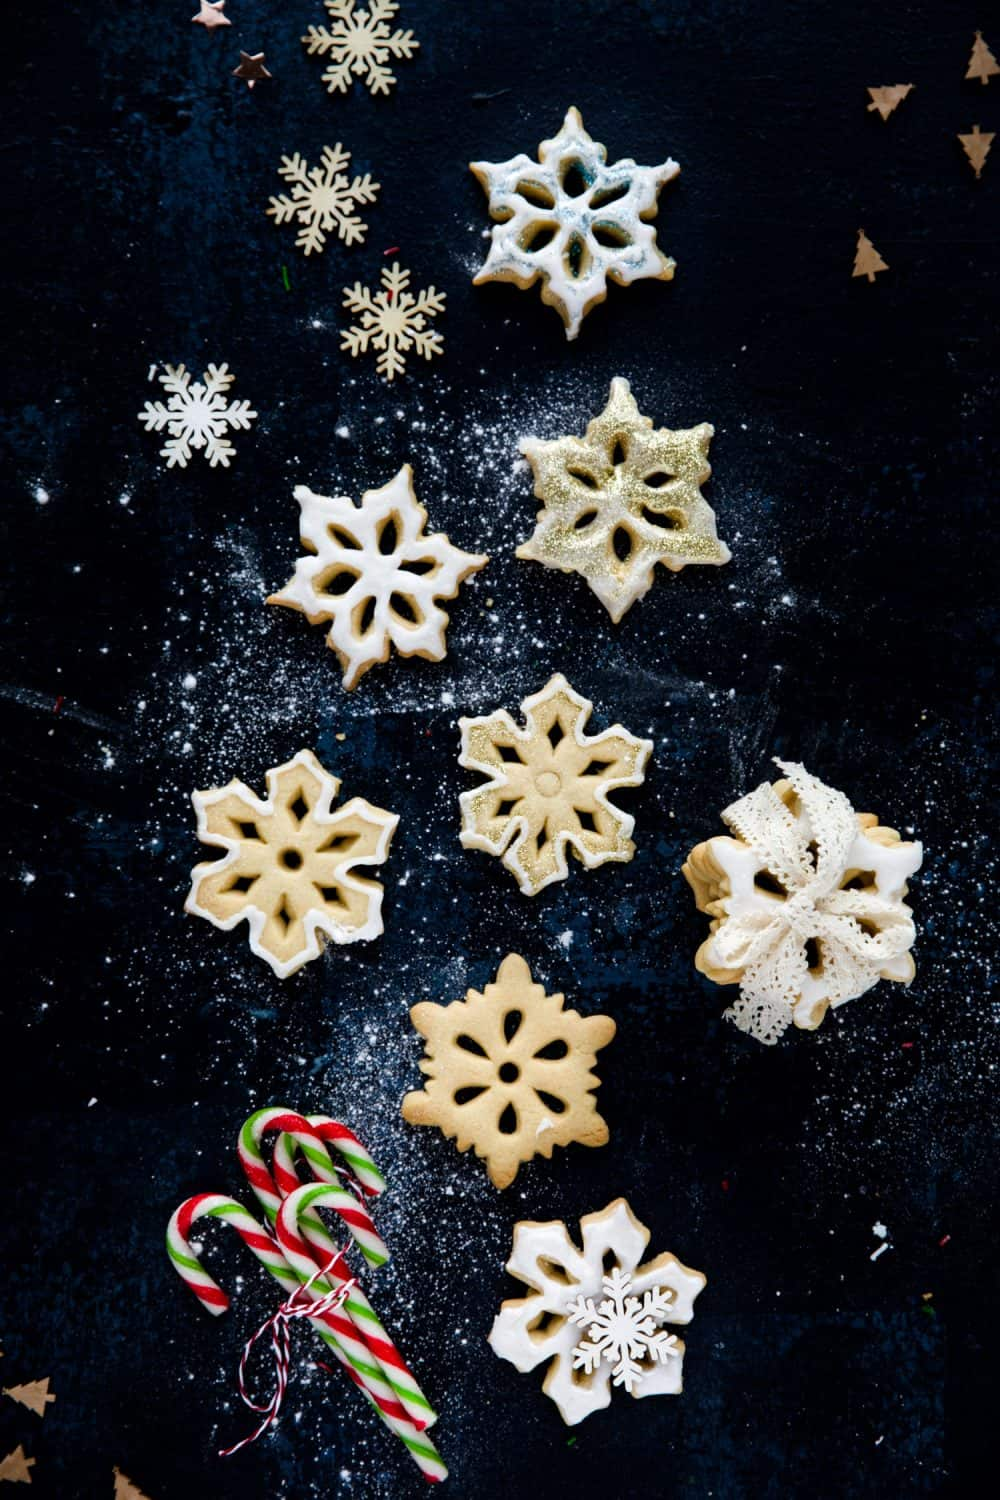 Overhead view of 7 snowflake biscuits on a dark blue background. There is a stack of biscuits to the right and at the bottom of the image a bundle of candy canes.